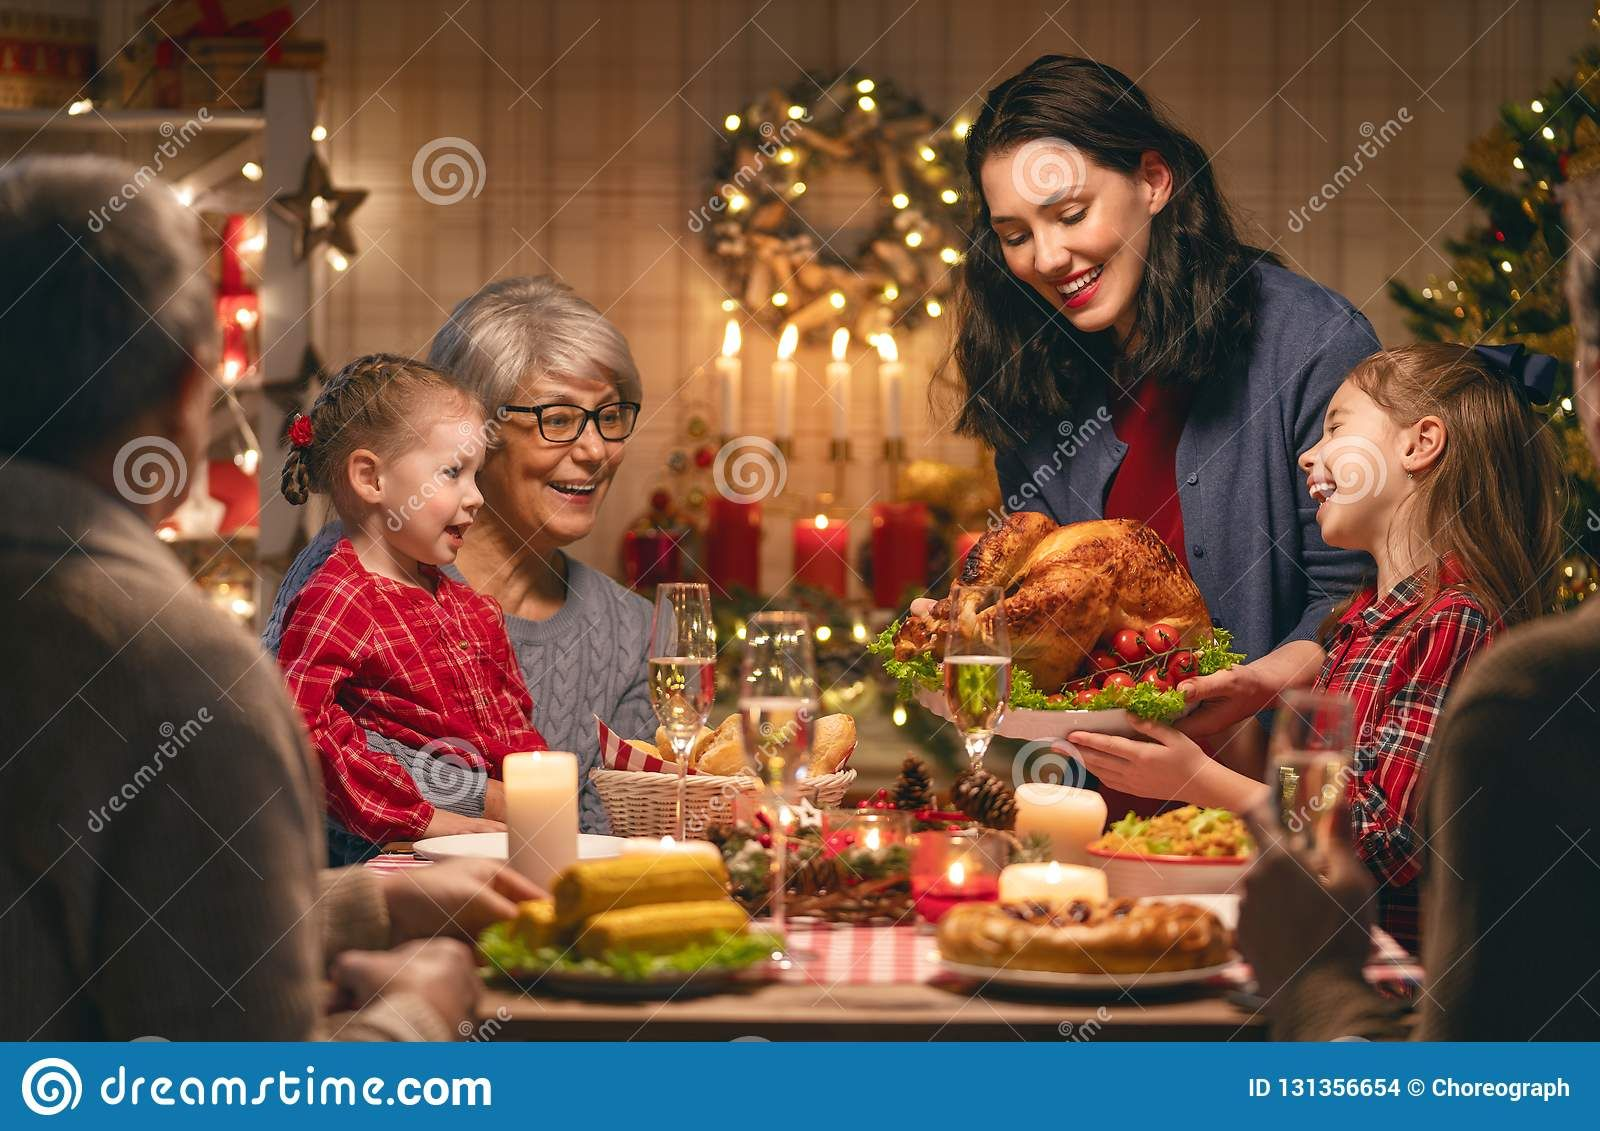 Merry Christmas Family Time Dinner At Home Stockphotos Christmas Christmas Dinner Table Traditional Christmas Dinner Menu Christmas Dinner